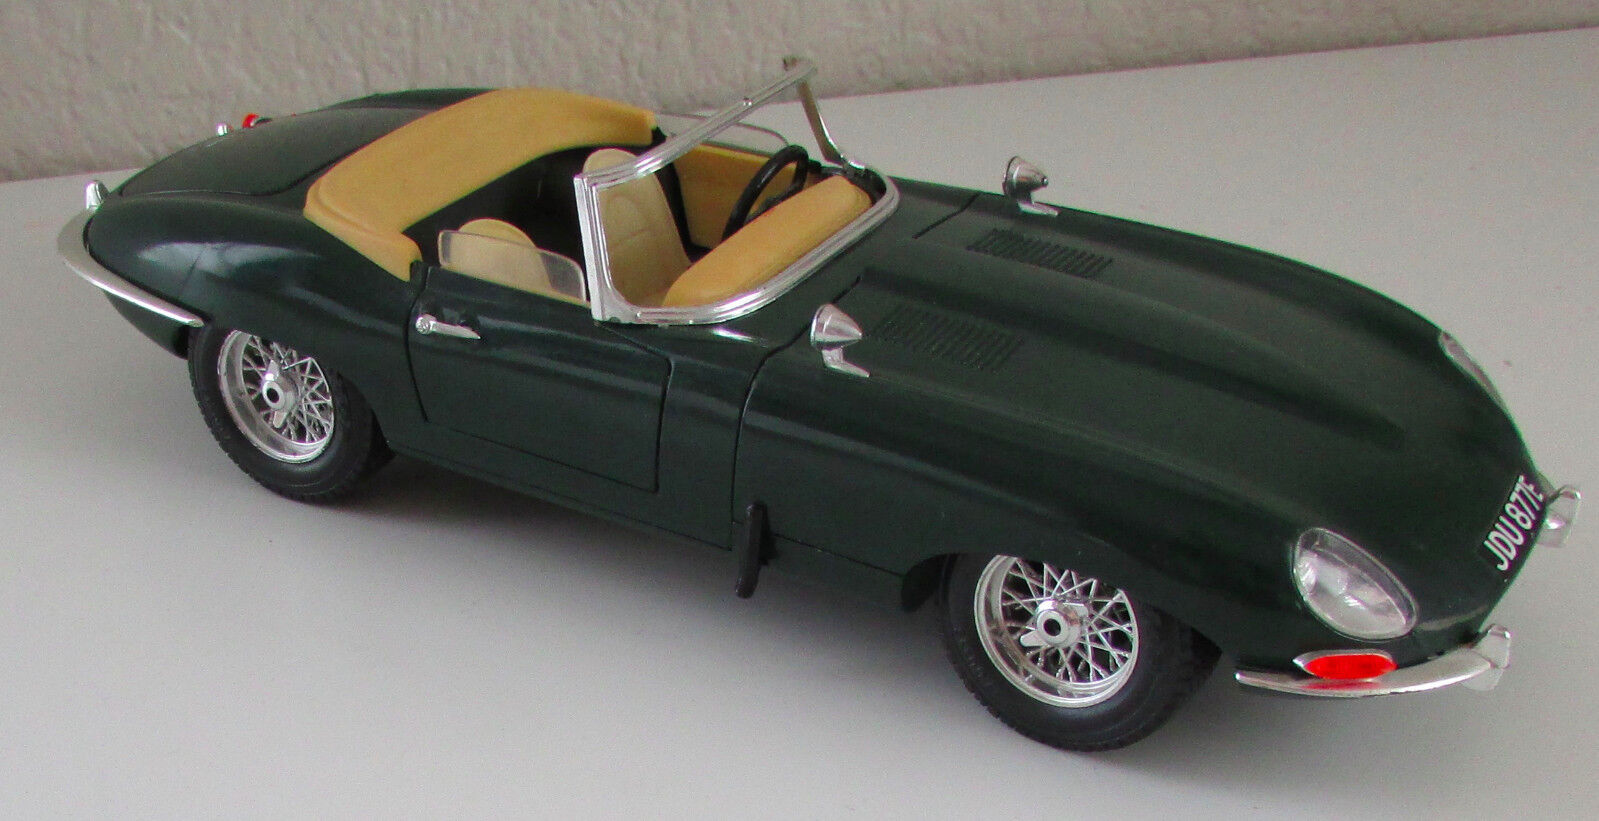 Vintage 1 18 SCALE JAGUAR  E -Type Diecast Model Congreenible British Sports Car